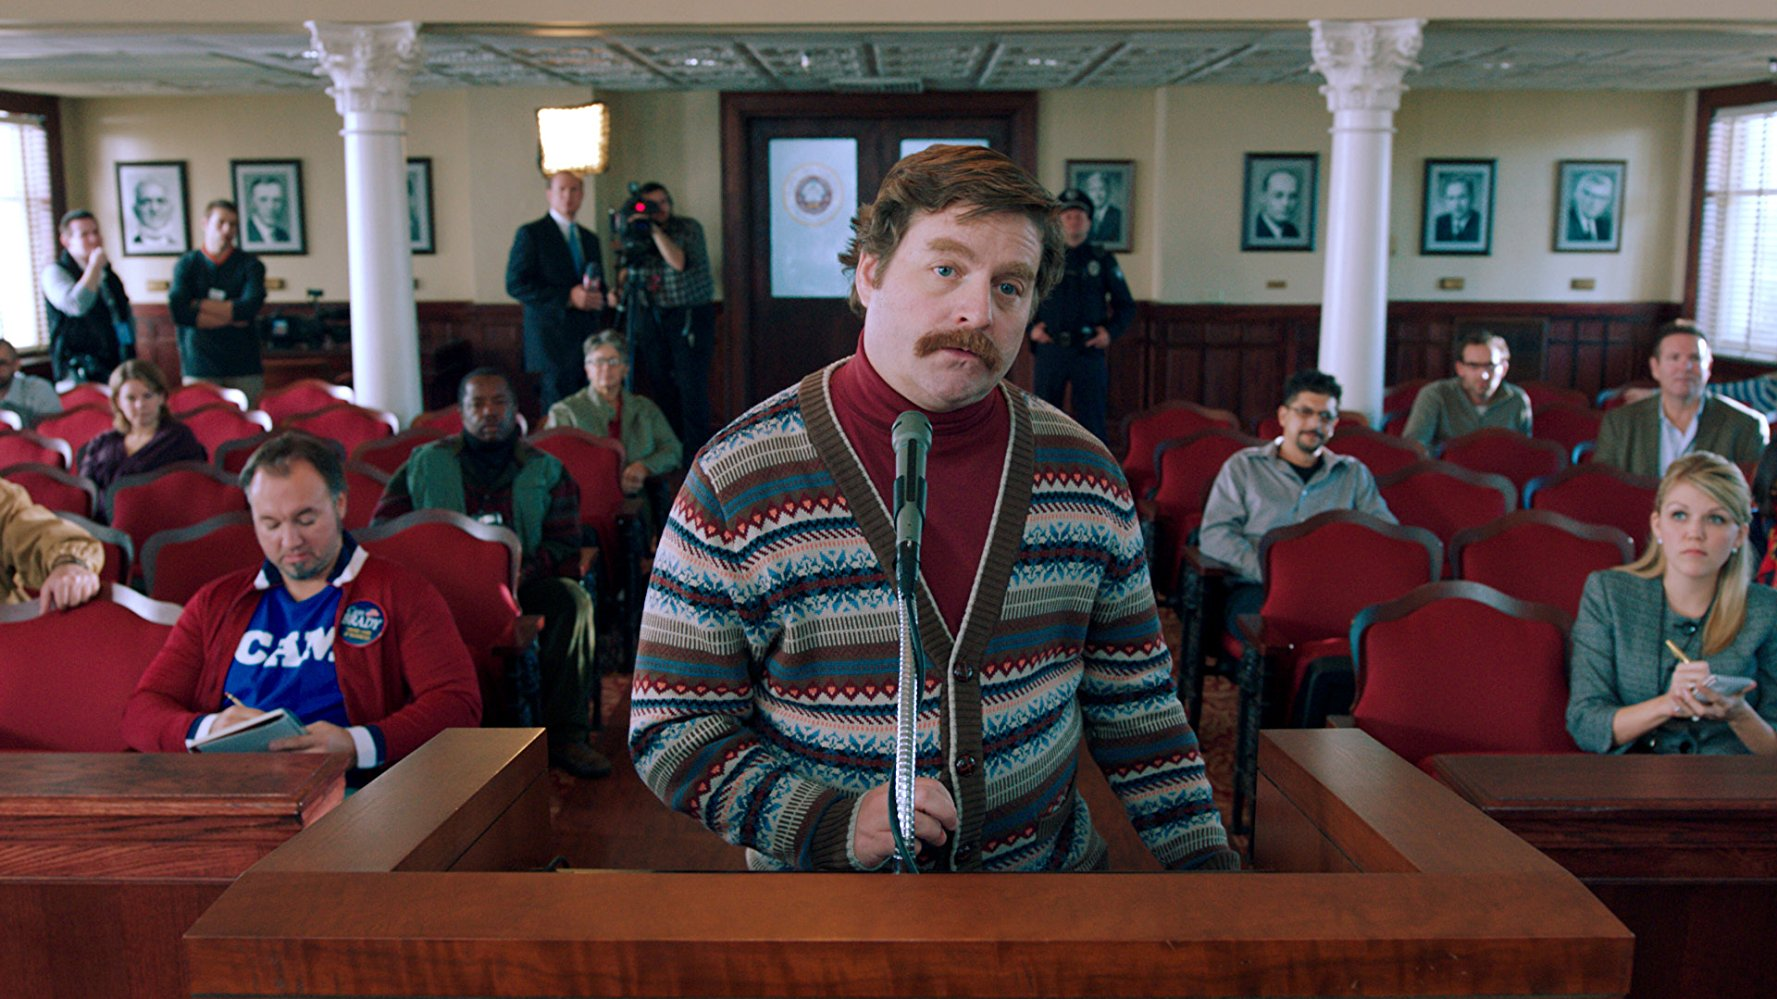 Marty Huggins